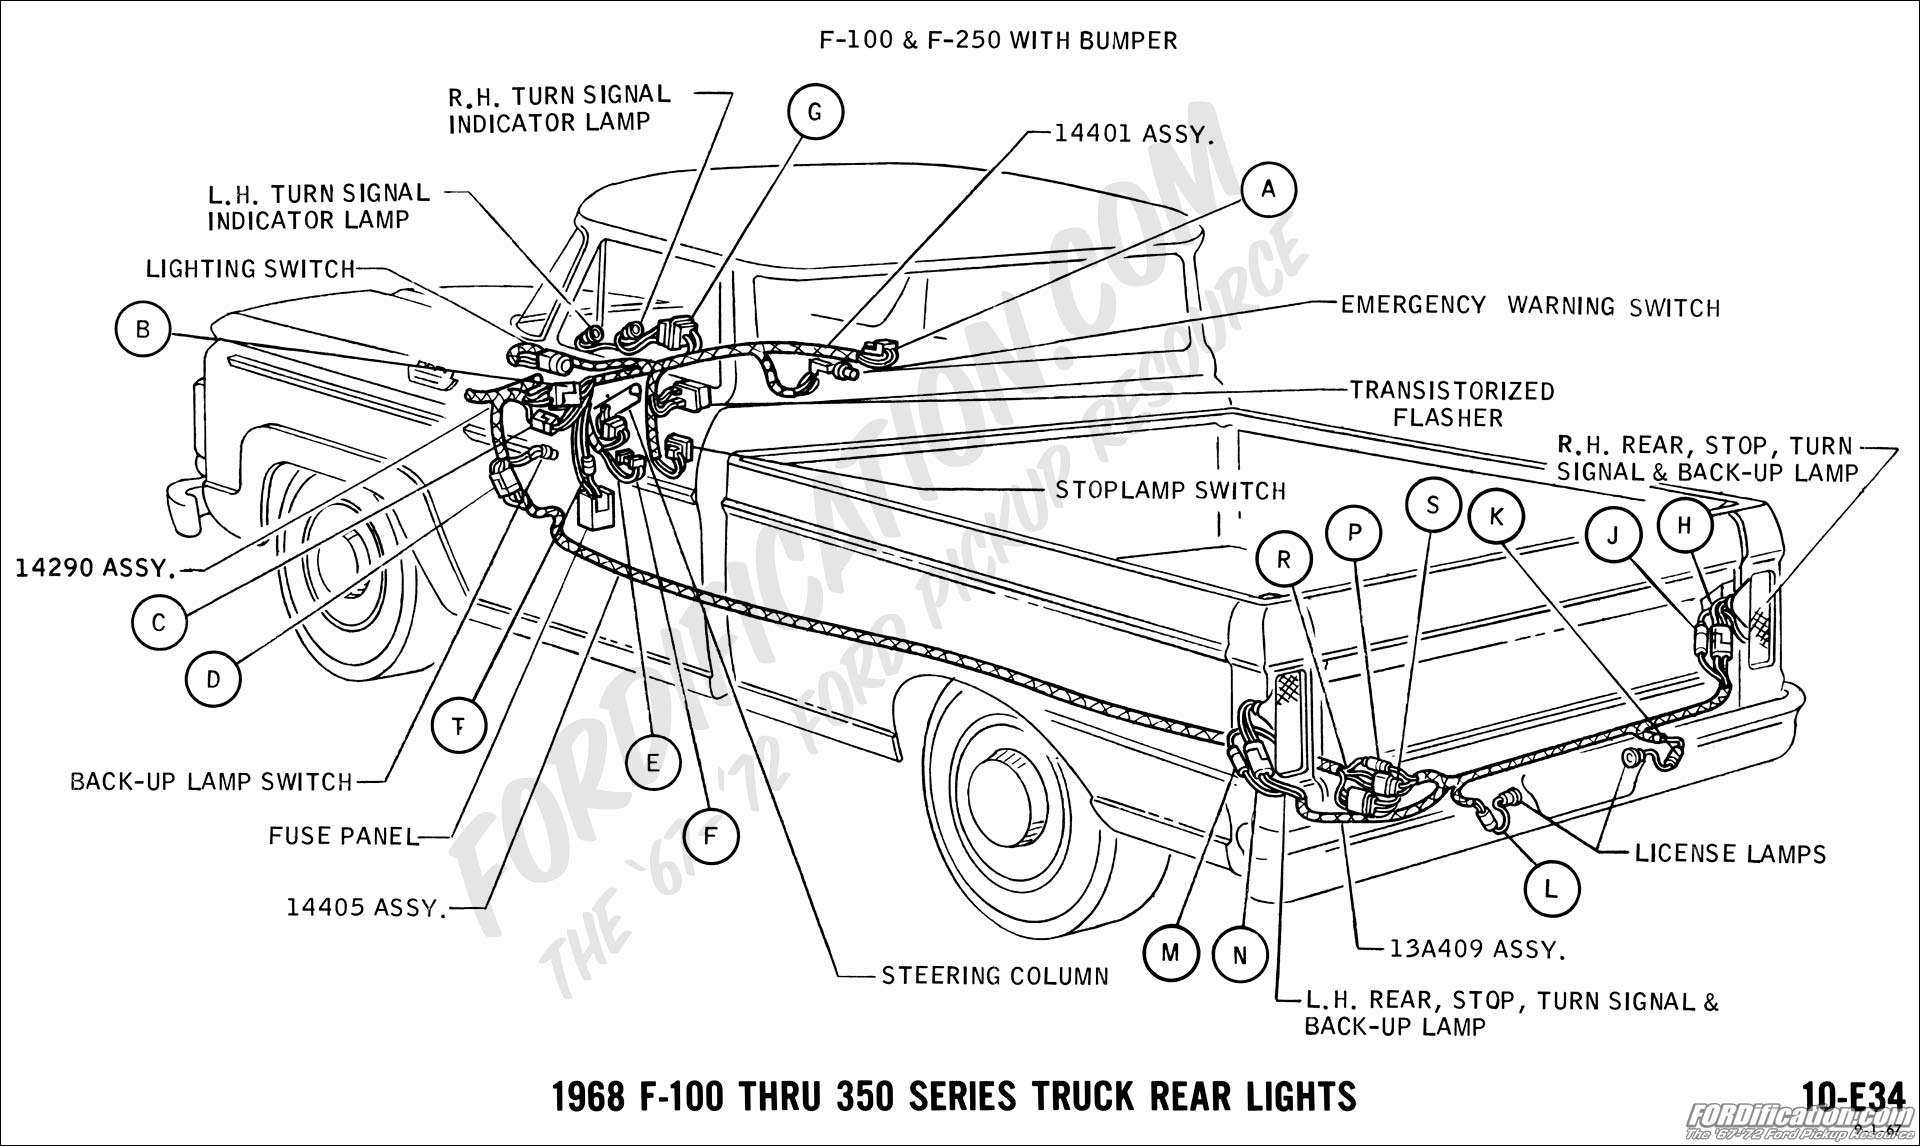 Schematics h likewise 55 59 2nd Series Chevy Pickup Rear End Parts likewise Ford 5 4 Triton Crate Engine as well 272960427387229697 further 1993 Chevy Truck Fuse Link. on 1966 chevrolet c10 pick up